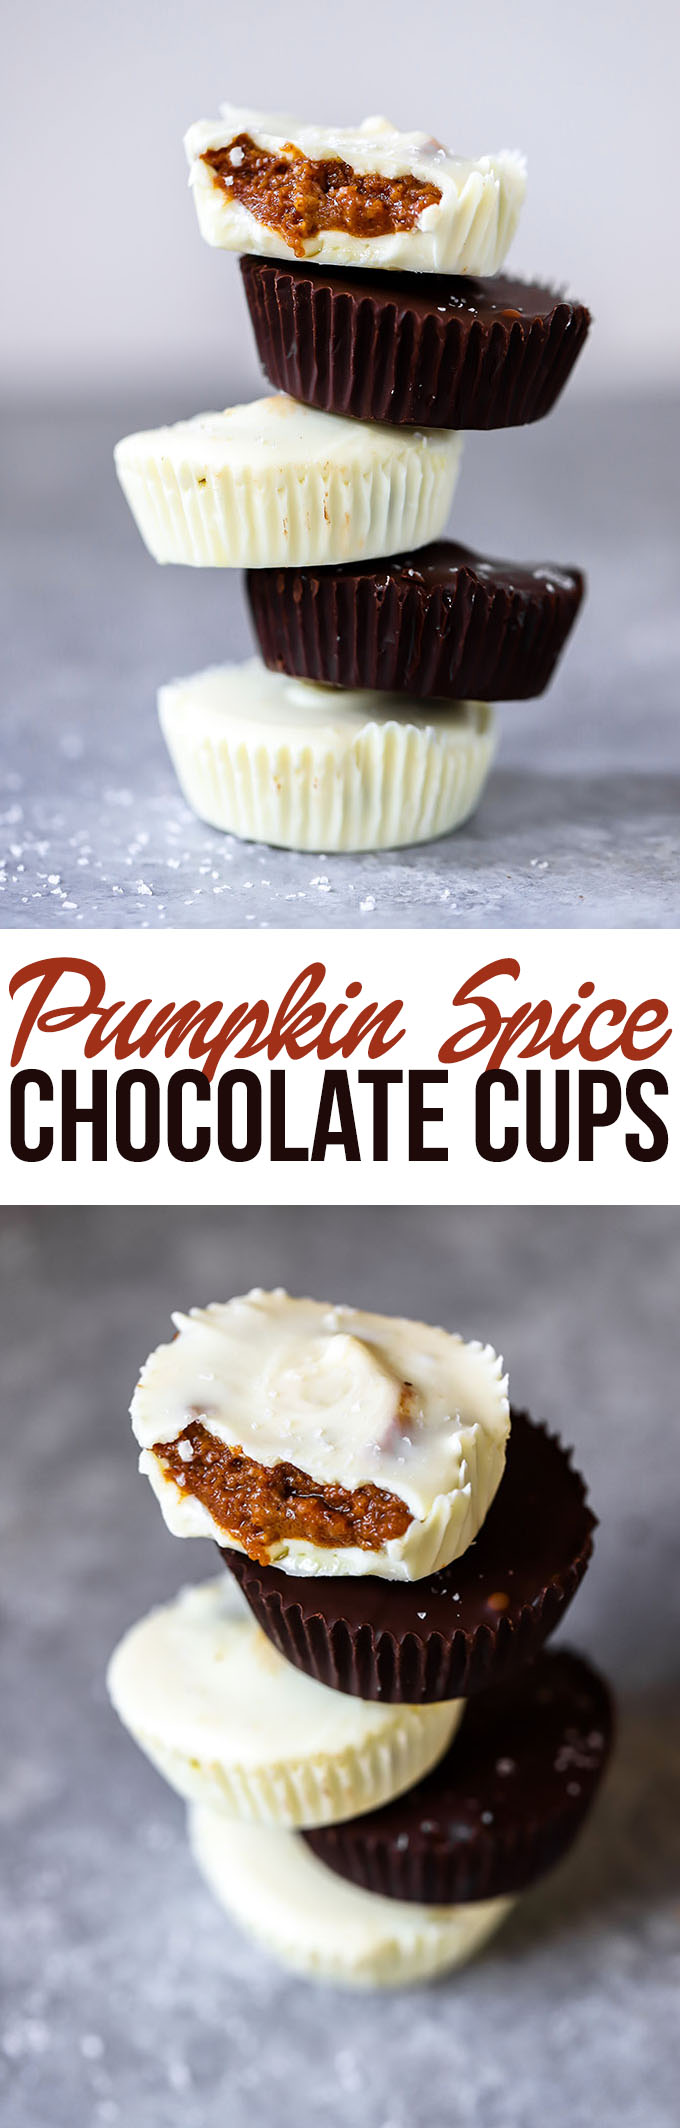 Pumpkin Spice Chocolate Cups | A delicious fall dessert that is simple to make